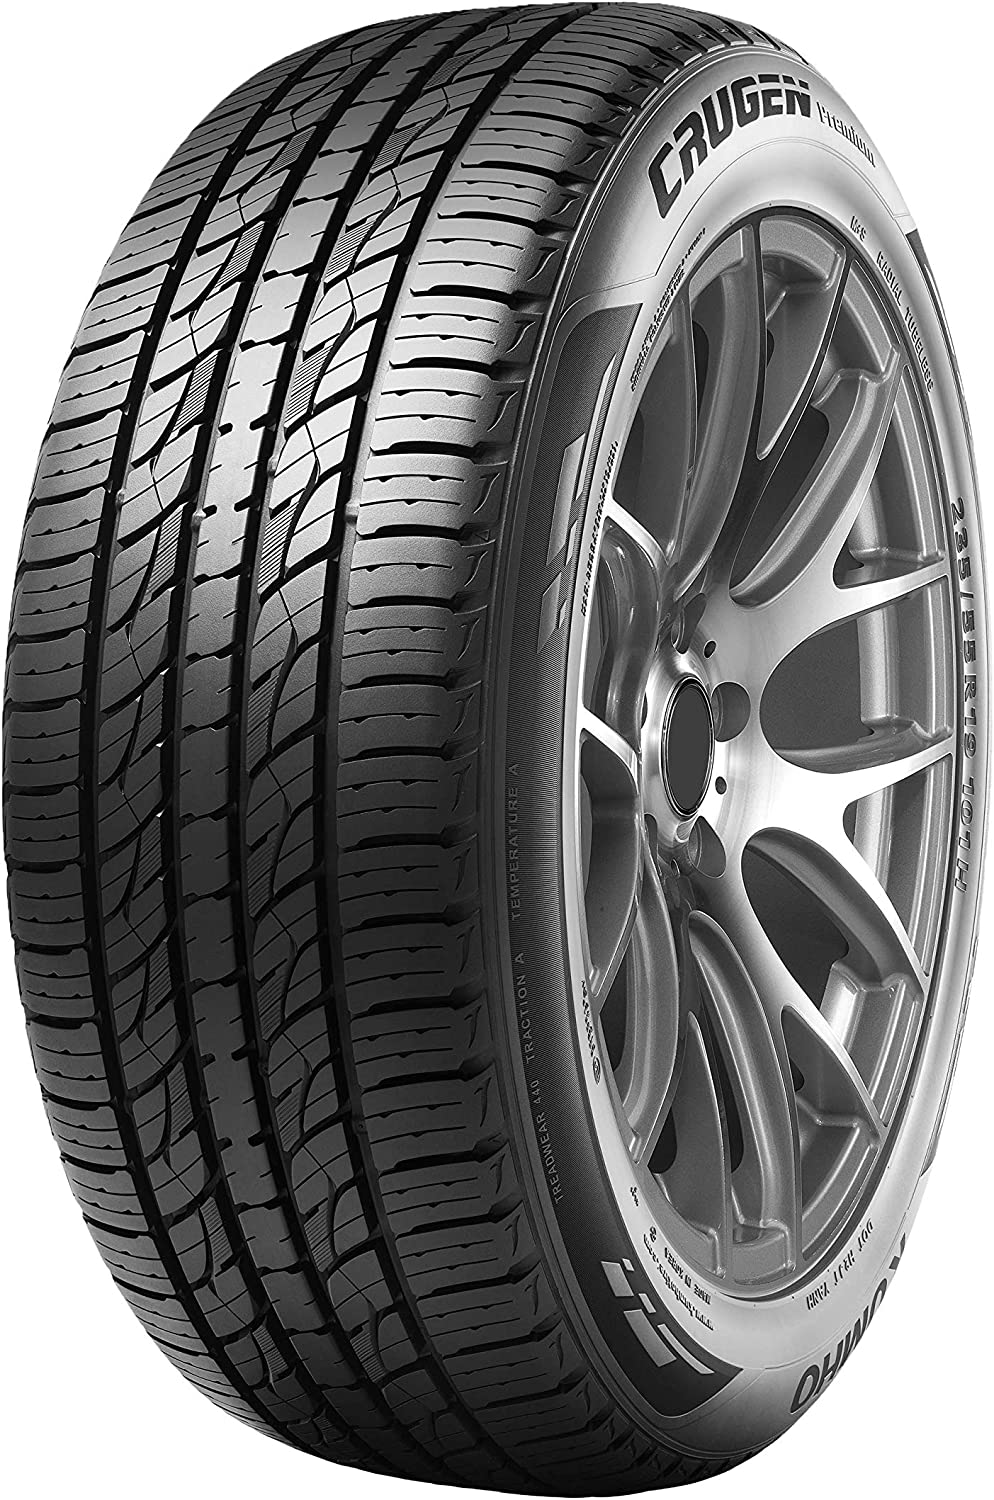 Kumho Crugen Premium KL33 all_ Season Radial Tire